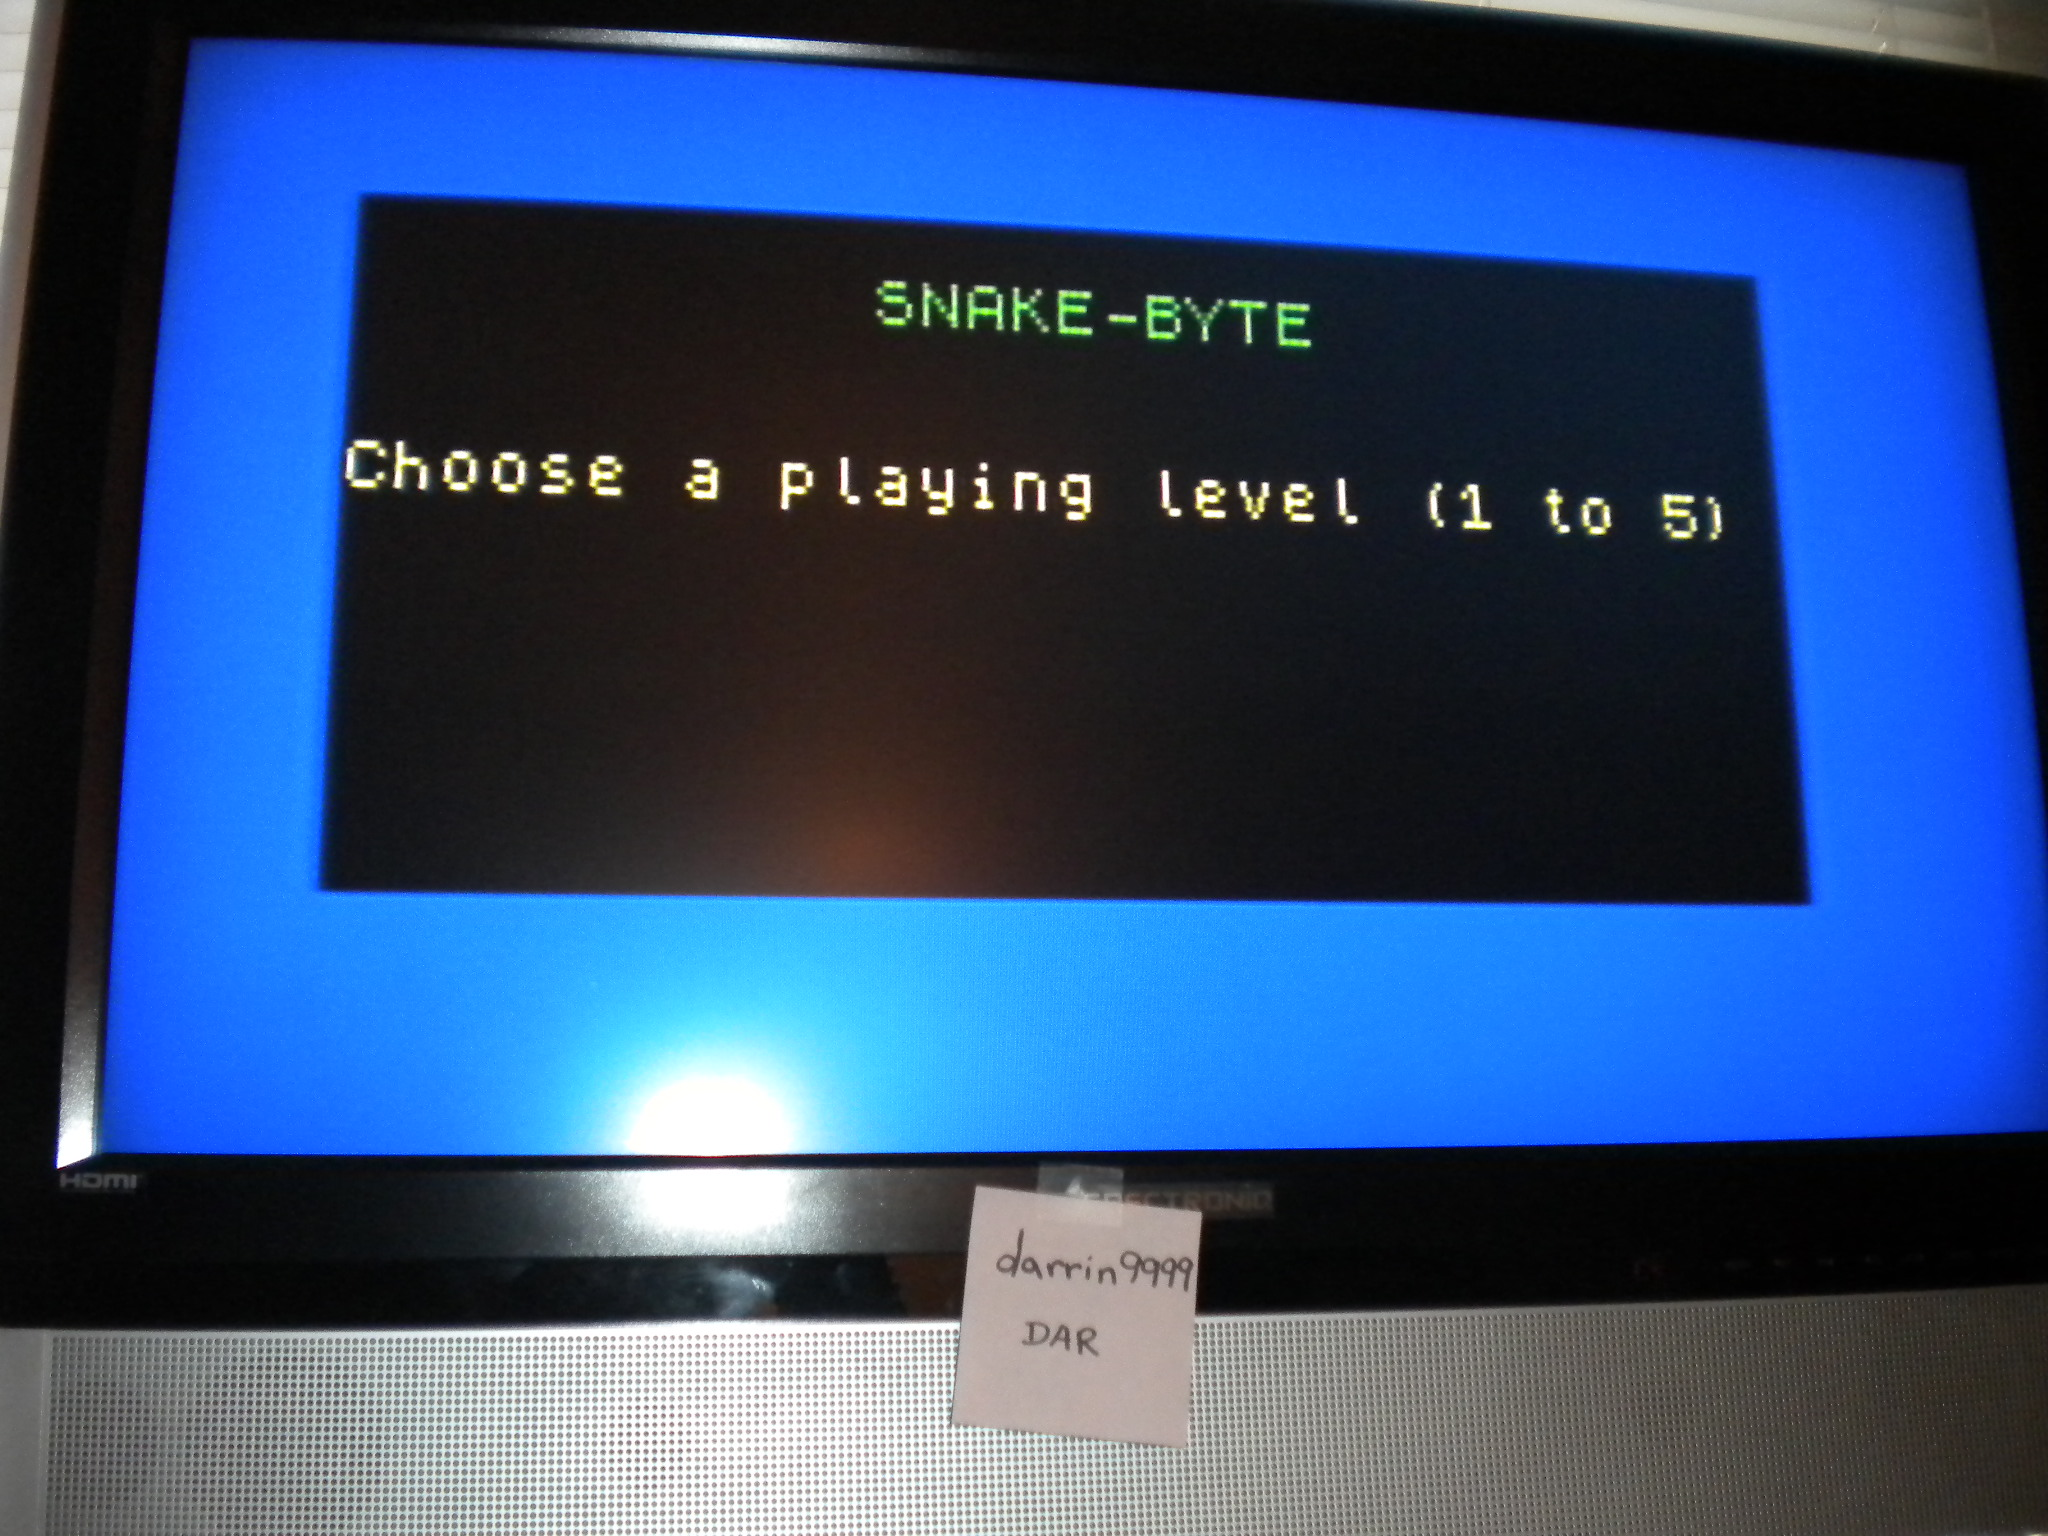 darrin9999: Snake Byte [Pi Software] [Level 1] (ZX Spectrum Emulated) 66 points on 2016-12-17 10:19:44